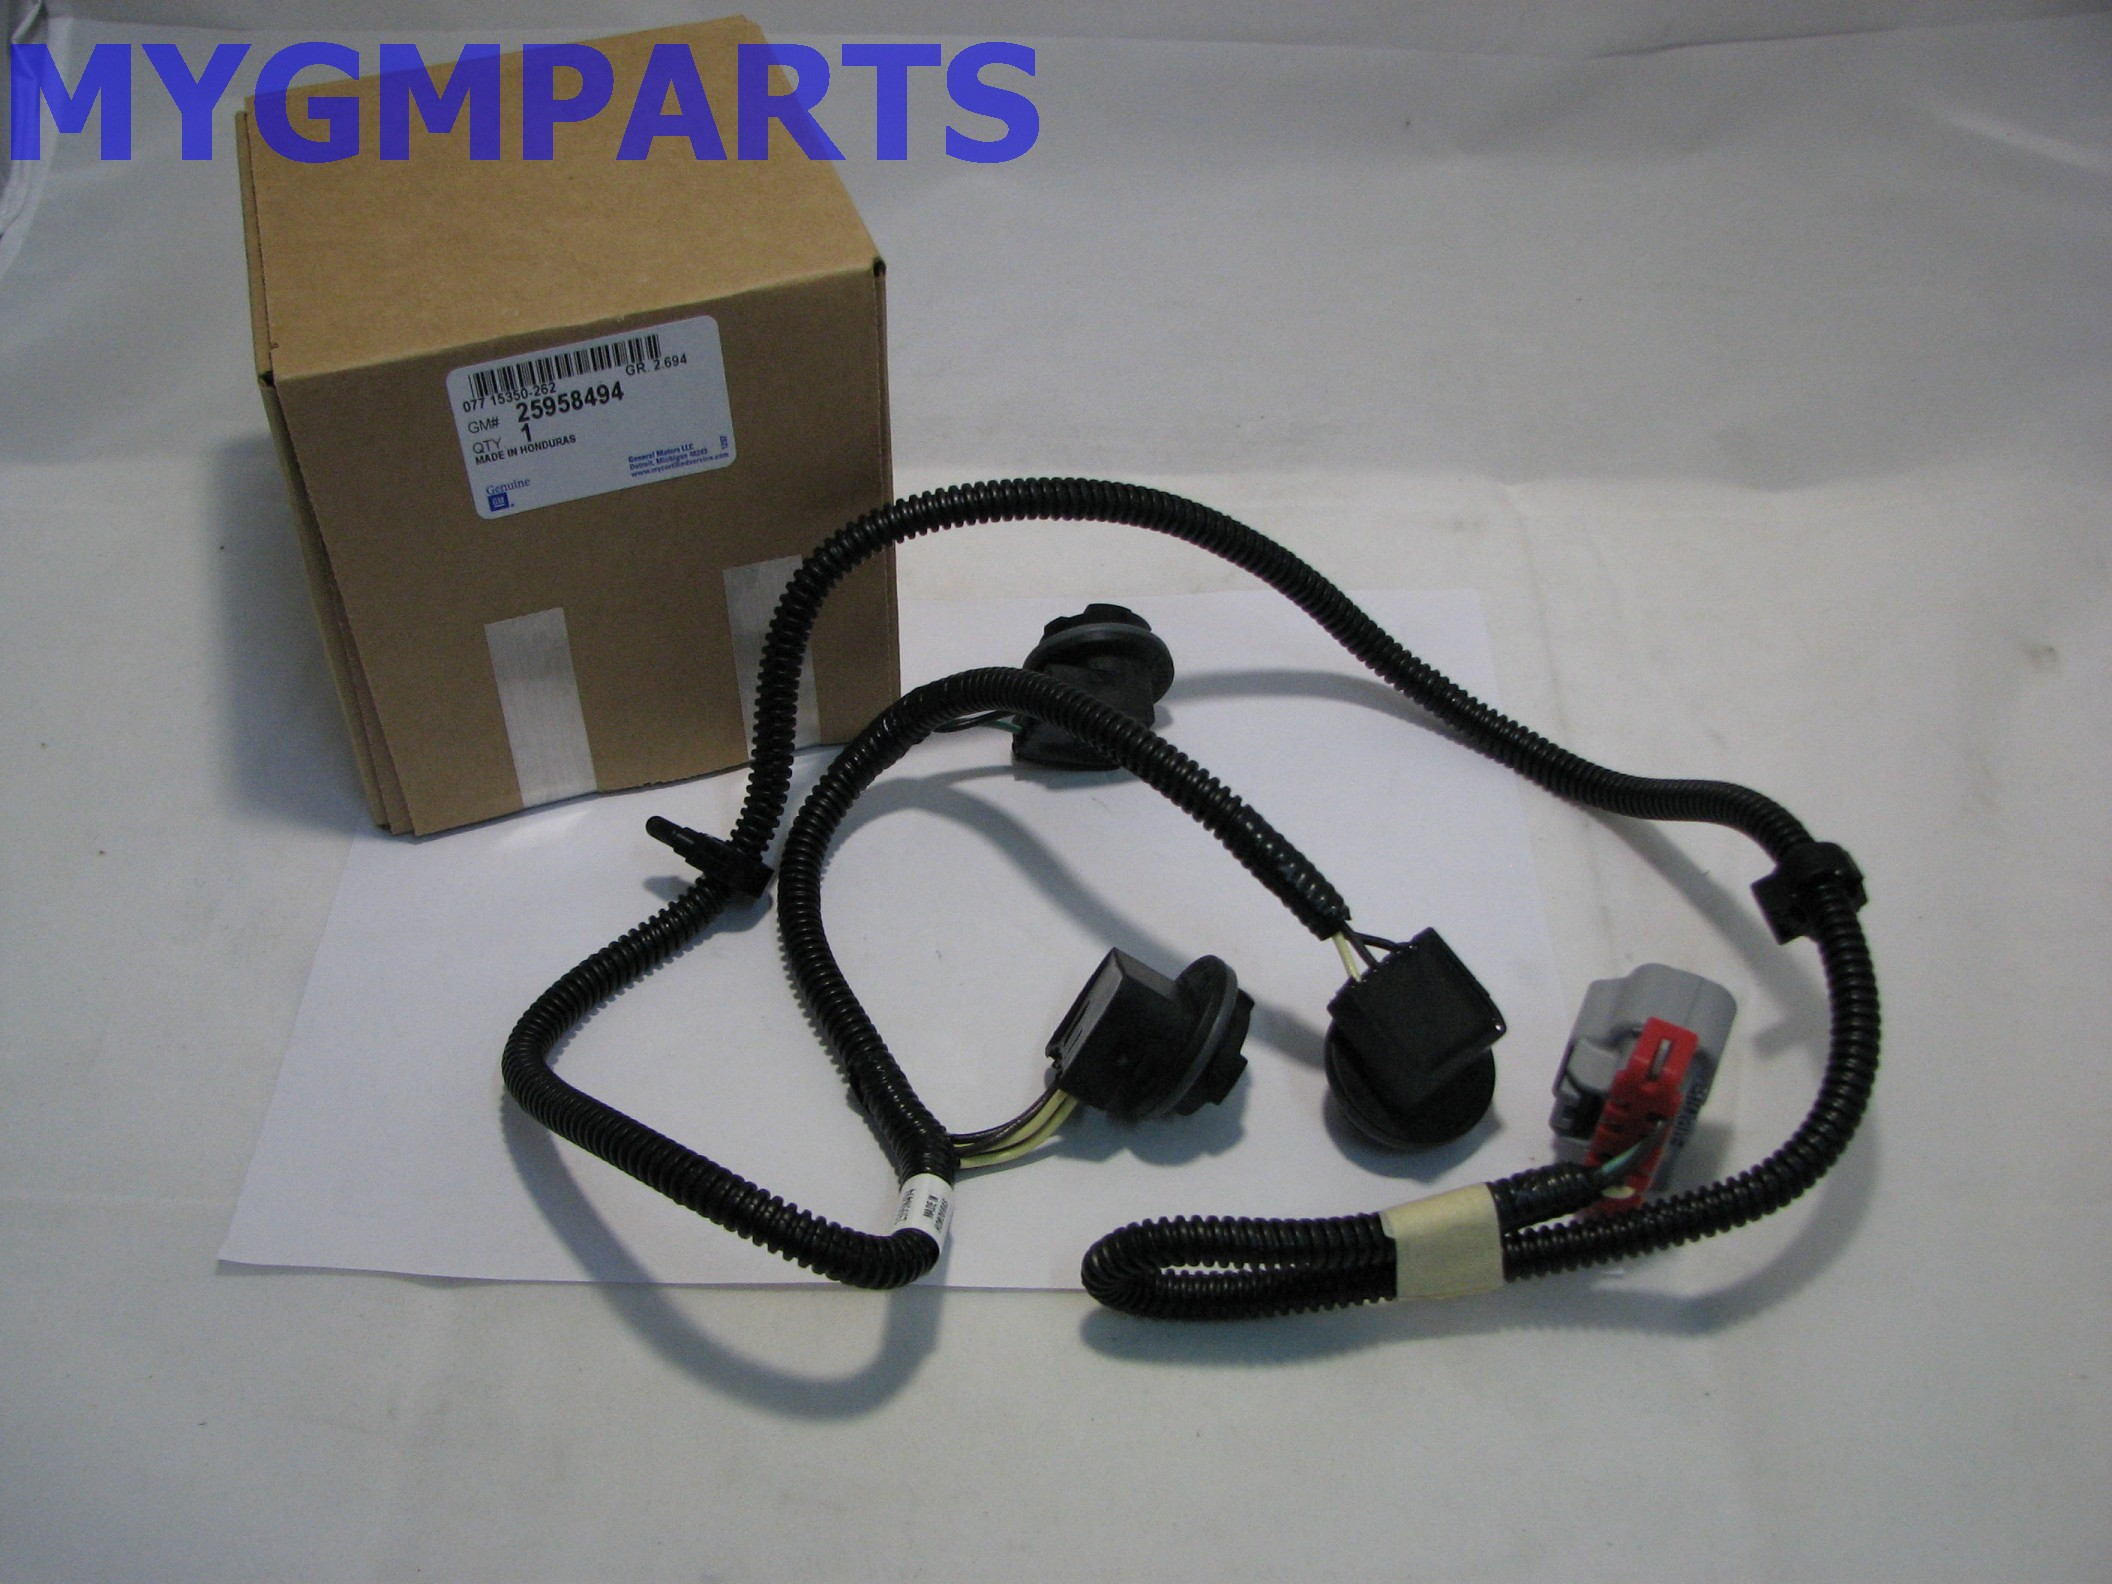 chevy silverado drivers side tail light wiring harness 2007 2013 chevy silverado drivers side tail light wiring harness 2007 2013 new oe 25958494